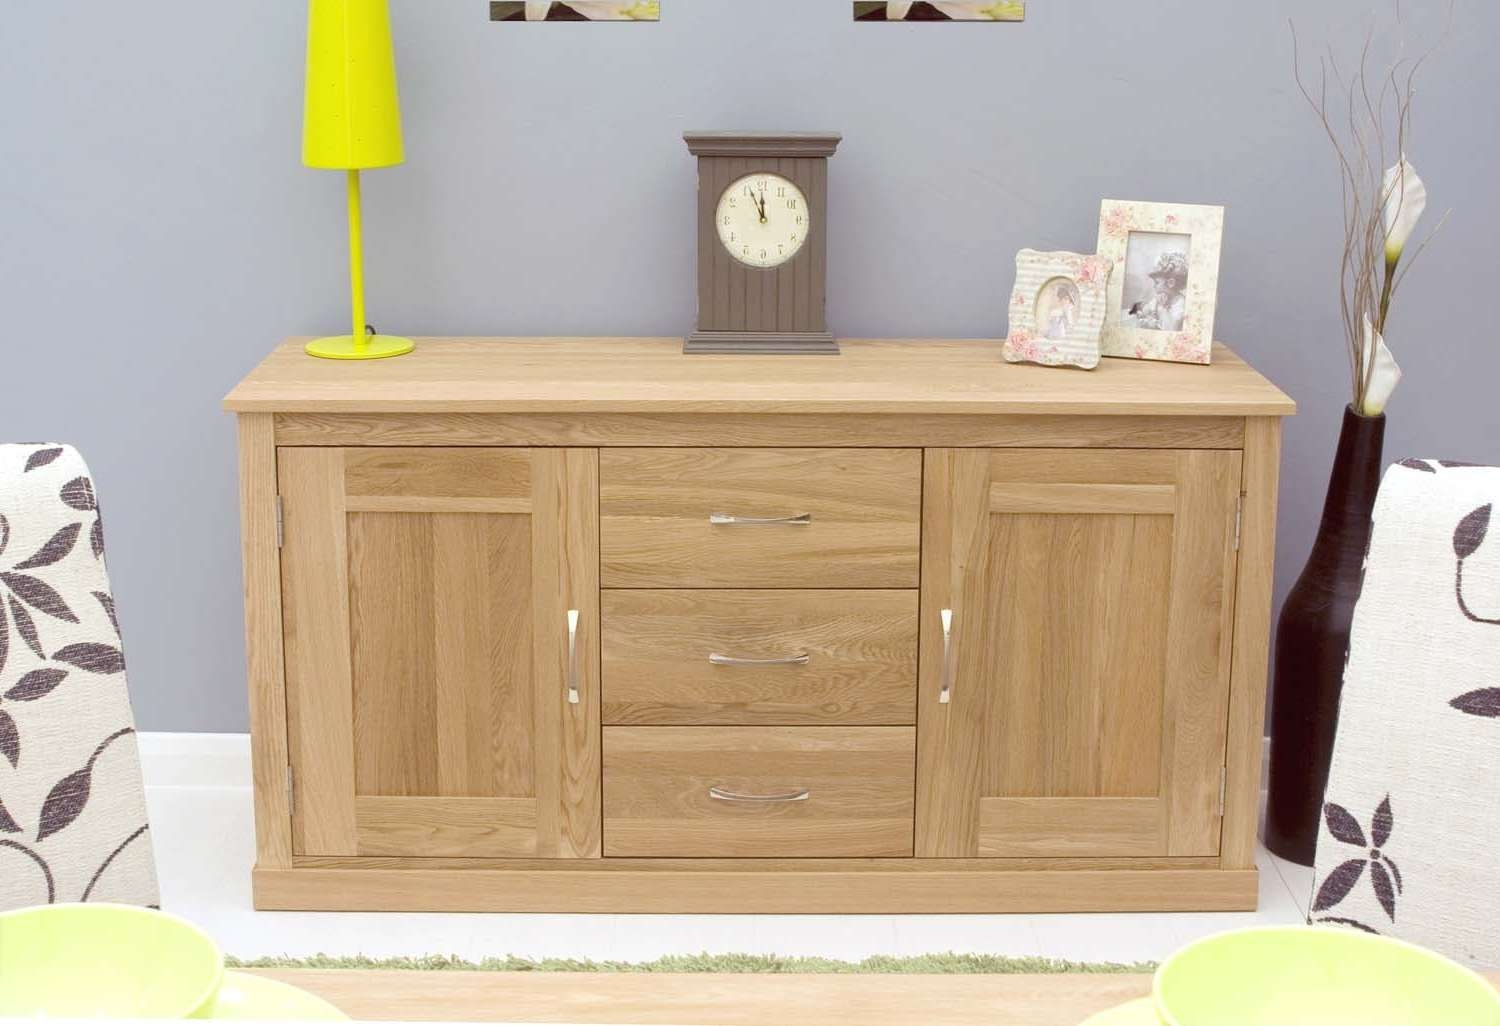 Modern Light Oak Sideboards And Console Table | Solid Oak For Living Room Sideboards (View 10 of 20)